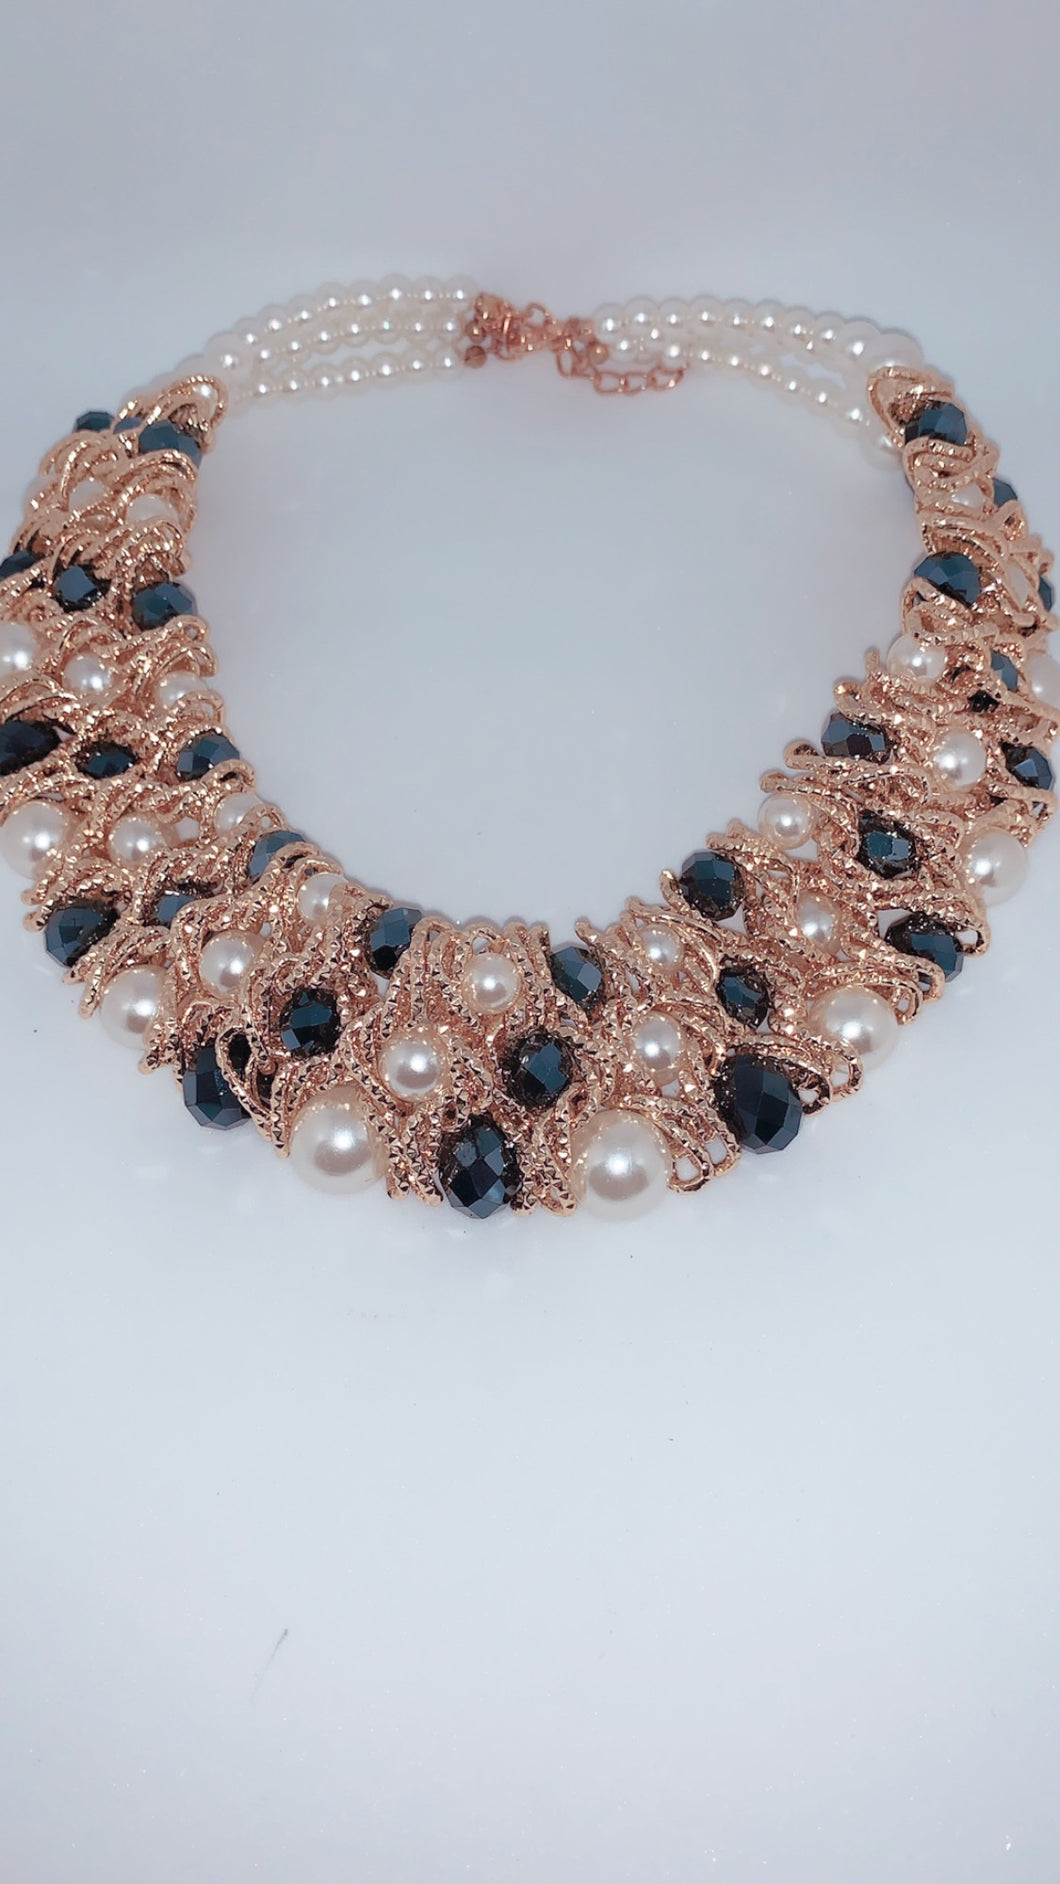 La Perla Necklace